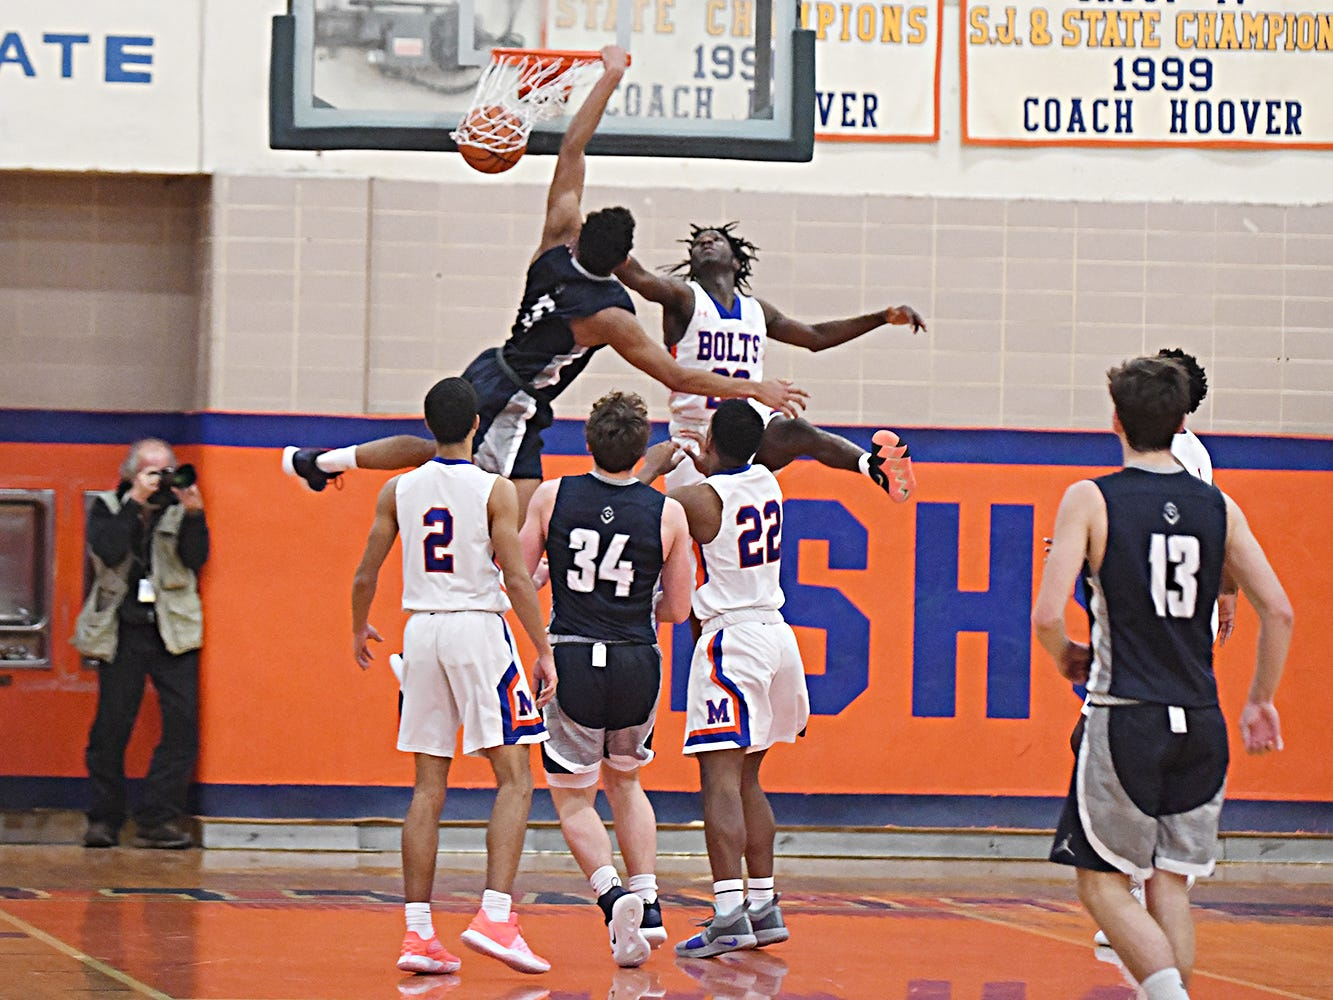 St. Augustine's Charles Solomon dunks the ball while Millville's Rynell Lawrence tries to block. The Hermits topped the Thunderbolts 66-53 on Friday, Jan. 18, 2019.